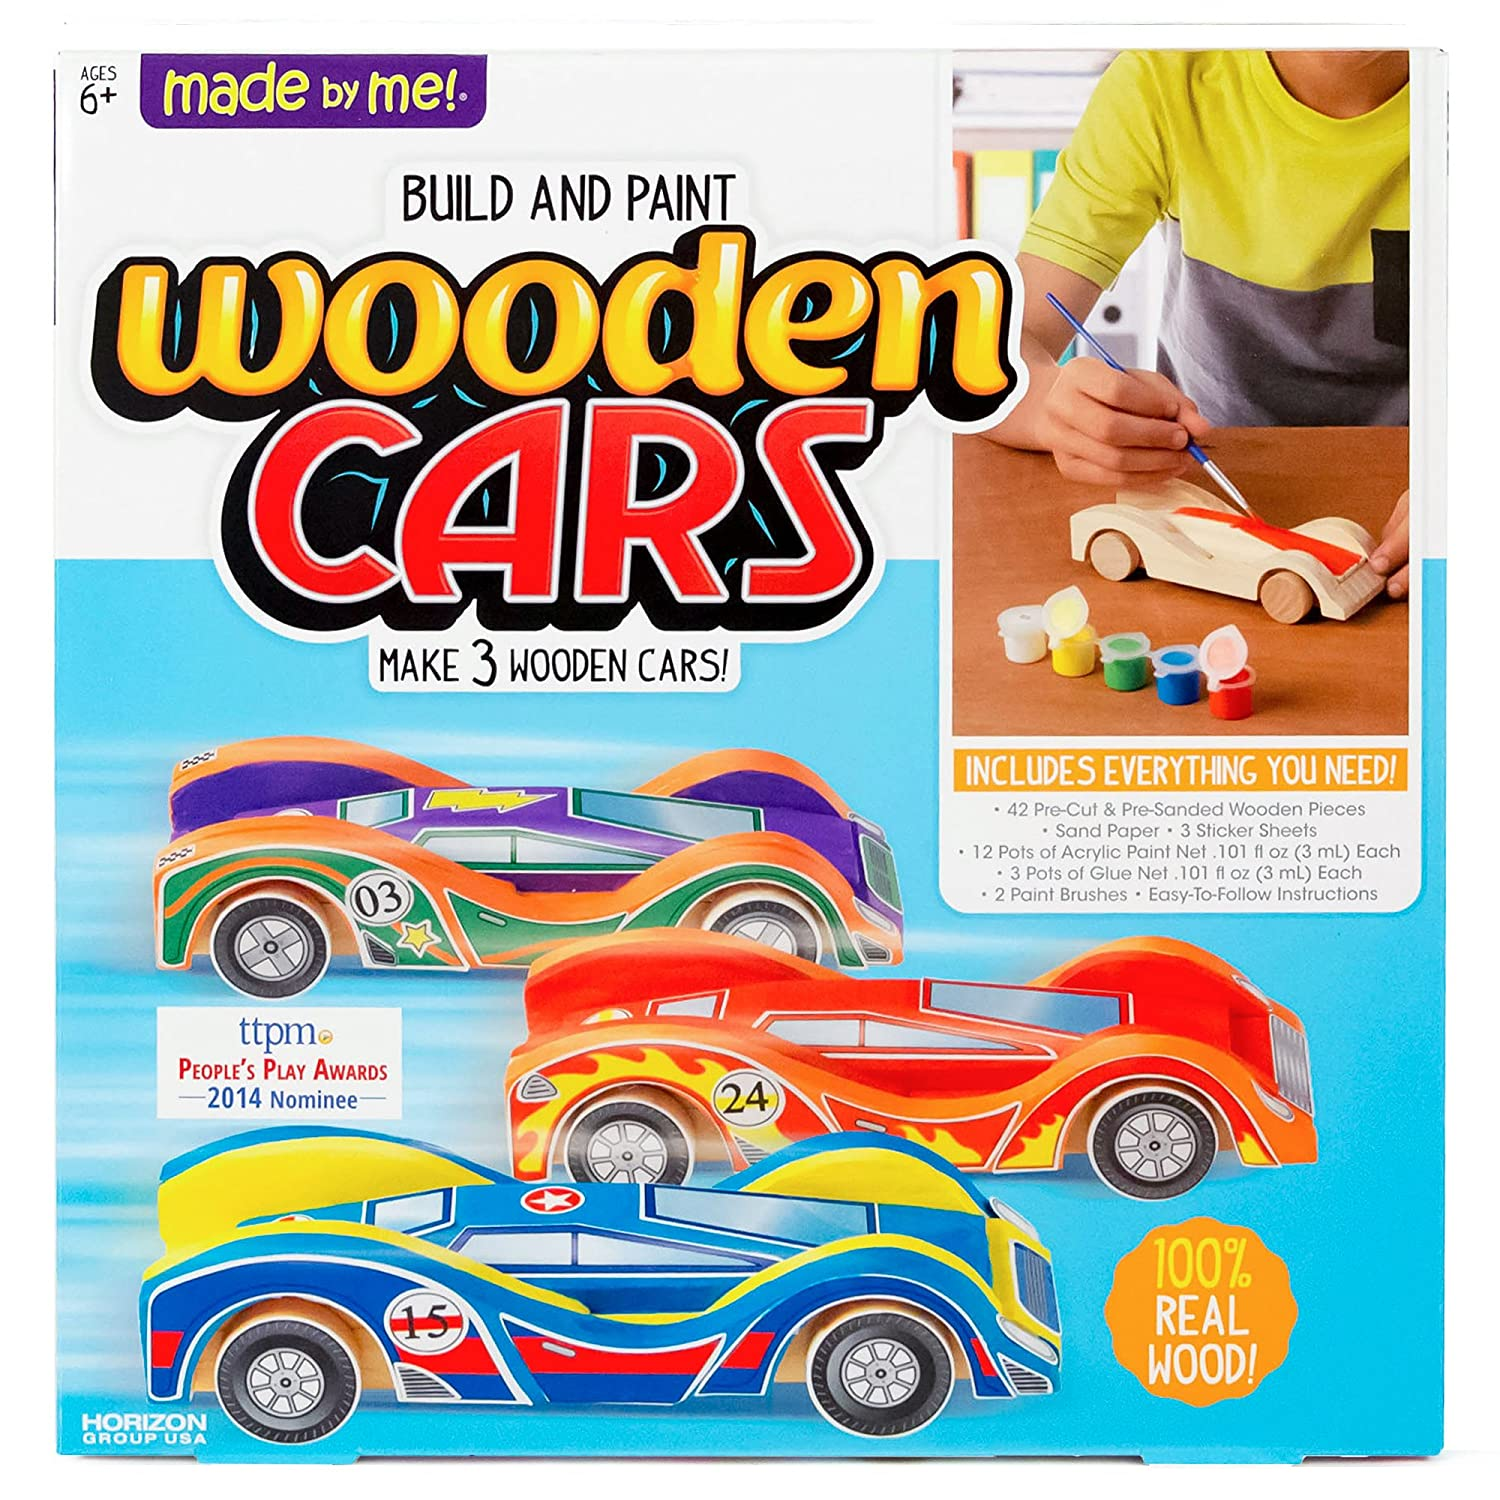 Made By Me Build & Paint Your Own Wooden Cars by Horizon Group Usa, DIY Wood Craft Kit, Easy To Assemble & Paint 3 Race Cars, Multicolored